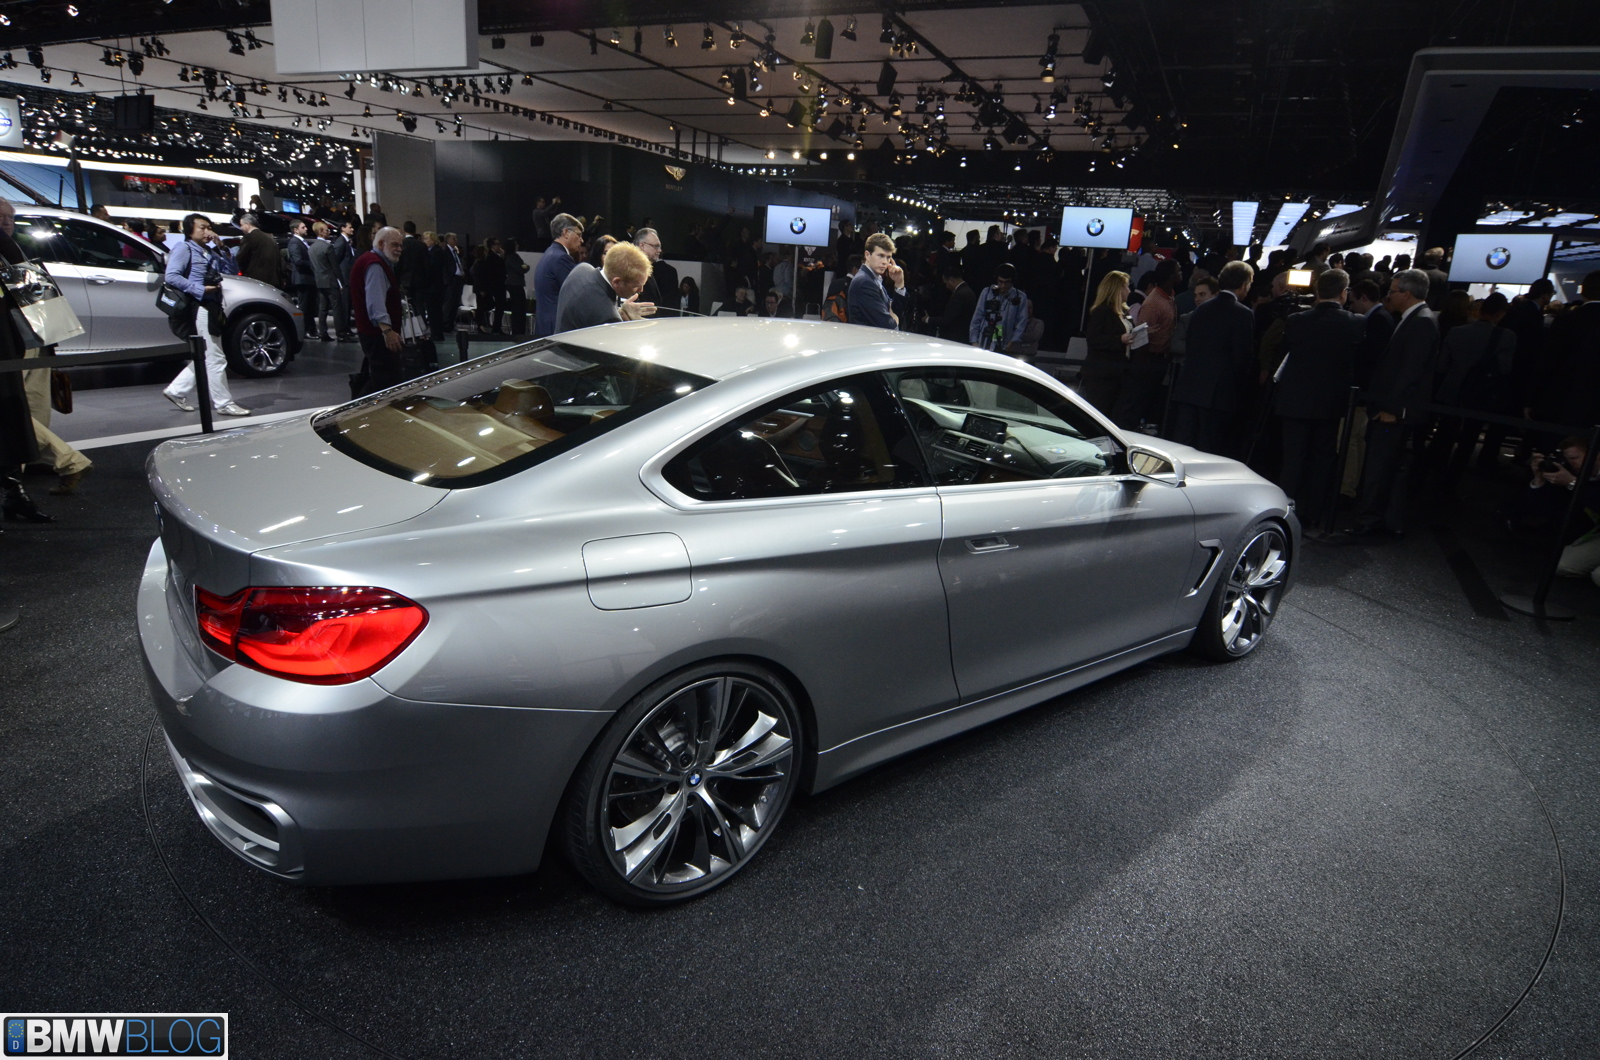 Coupe Series bmw m6 2014 BMW Photo gallery